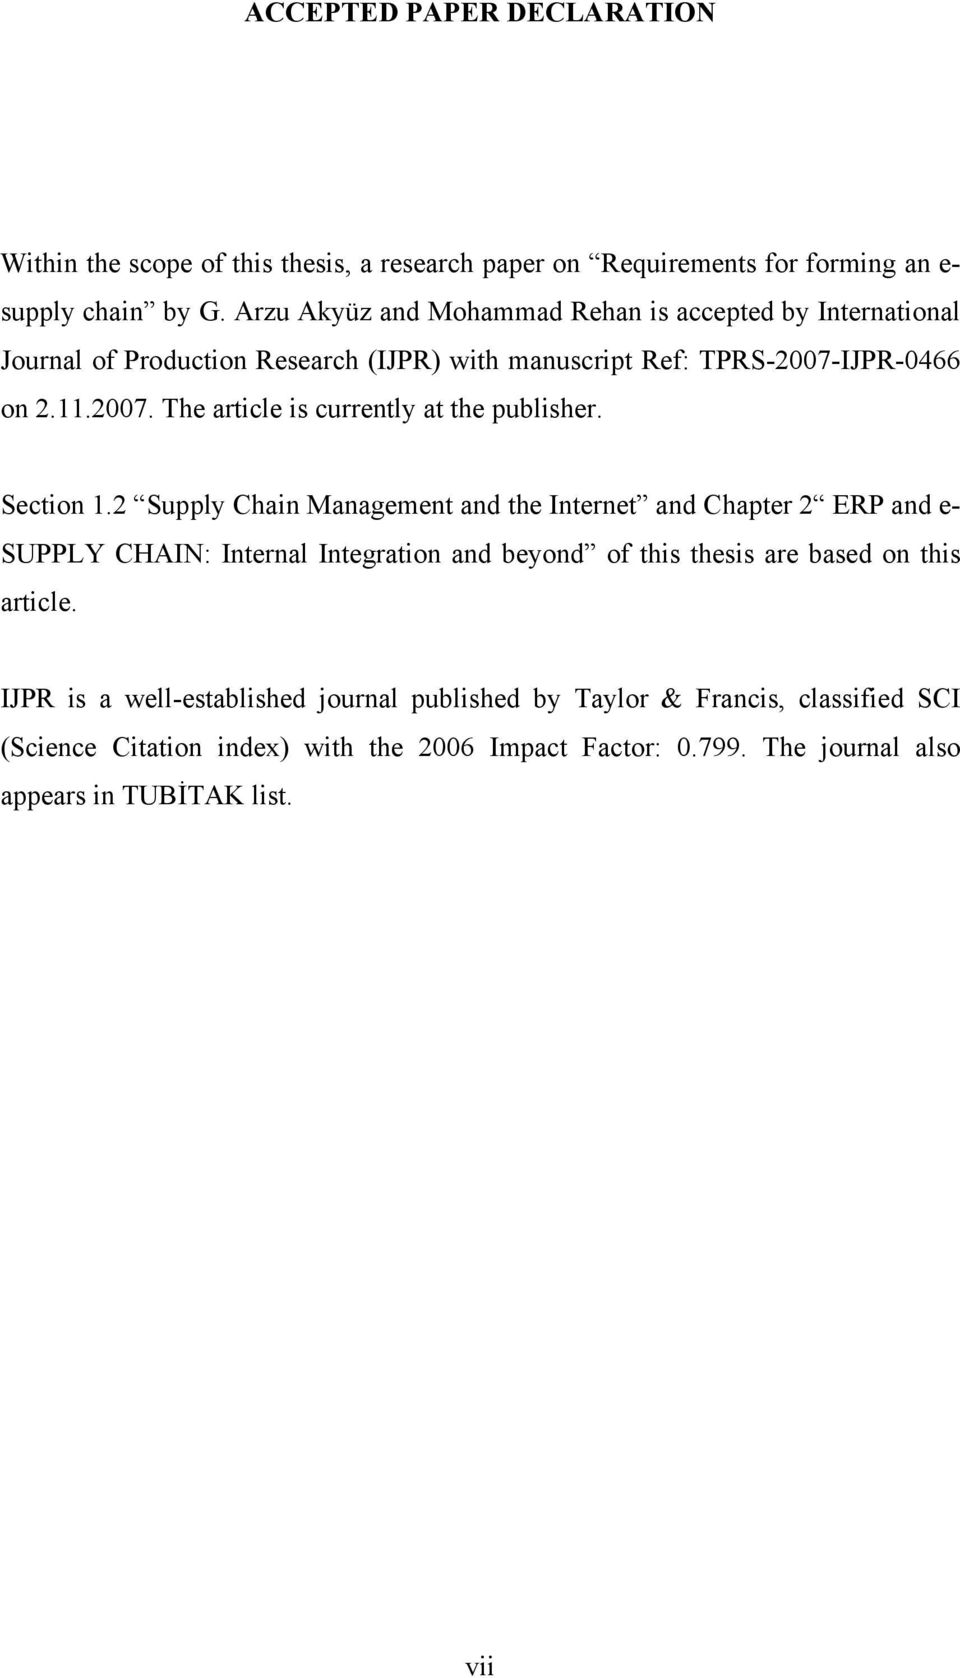 IJPR-0466 on 2.11.2007. The article is currently at the publisher. Section 1.